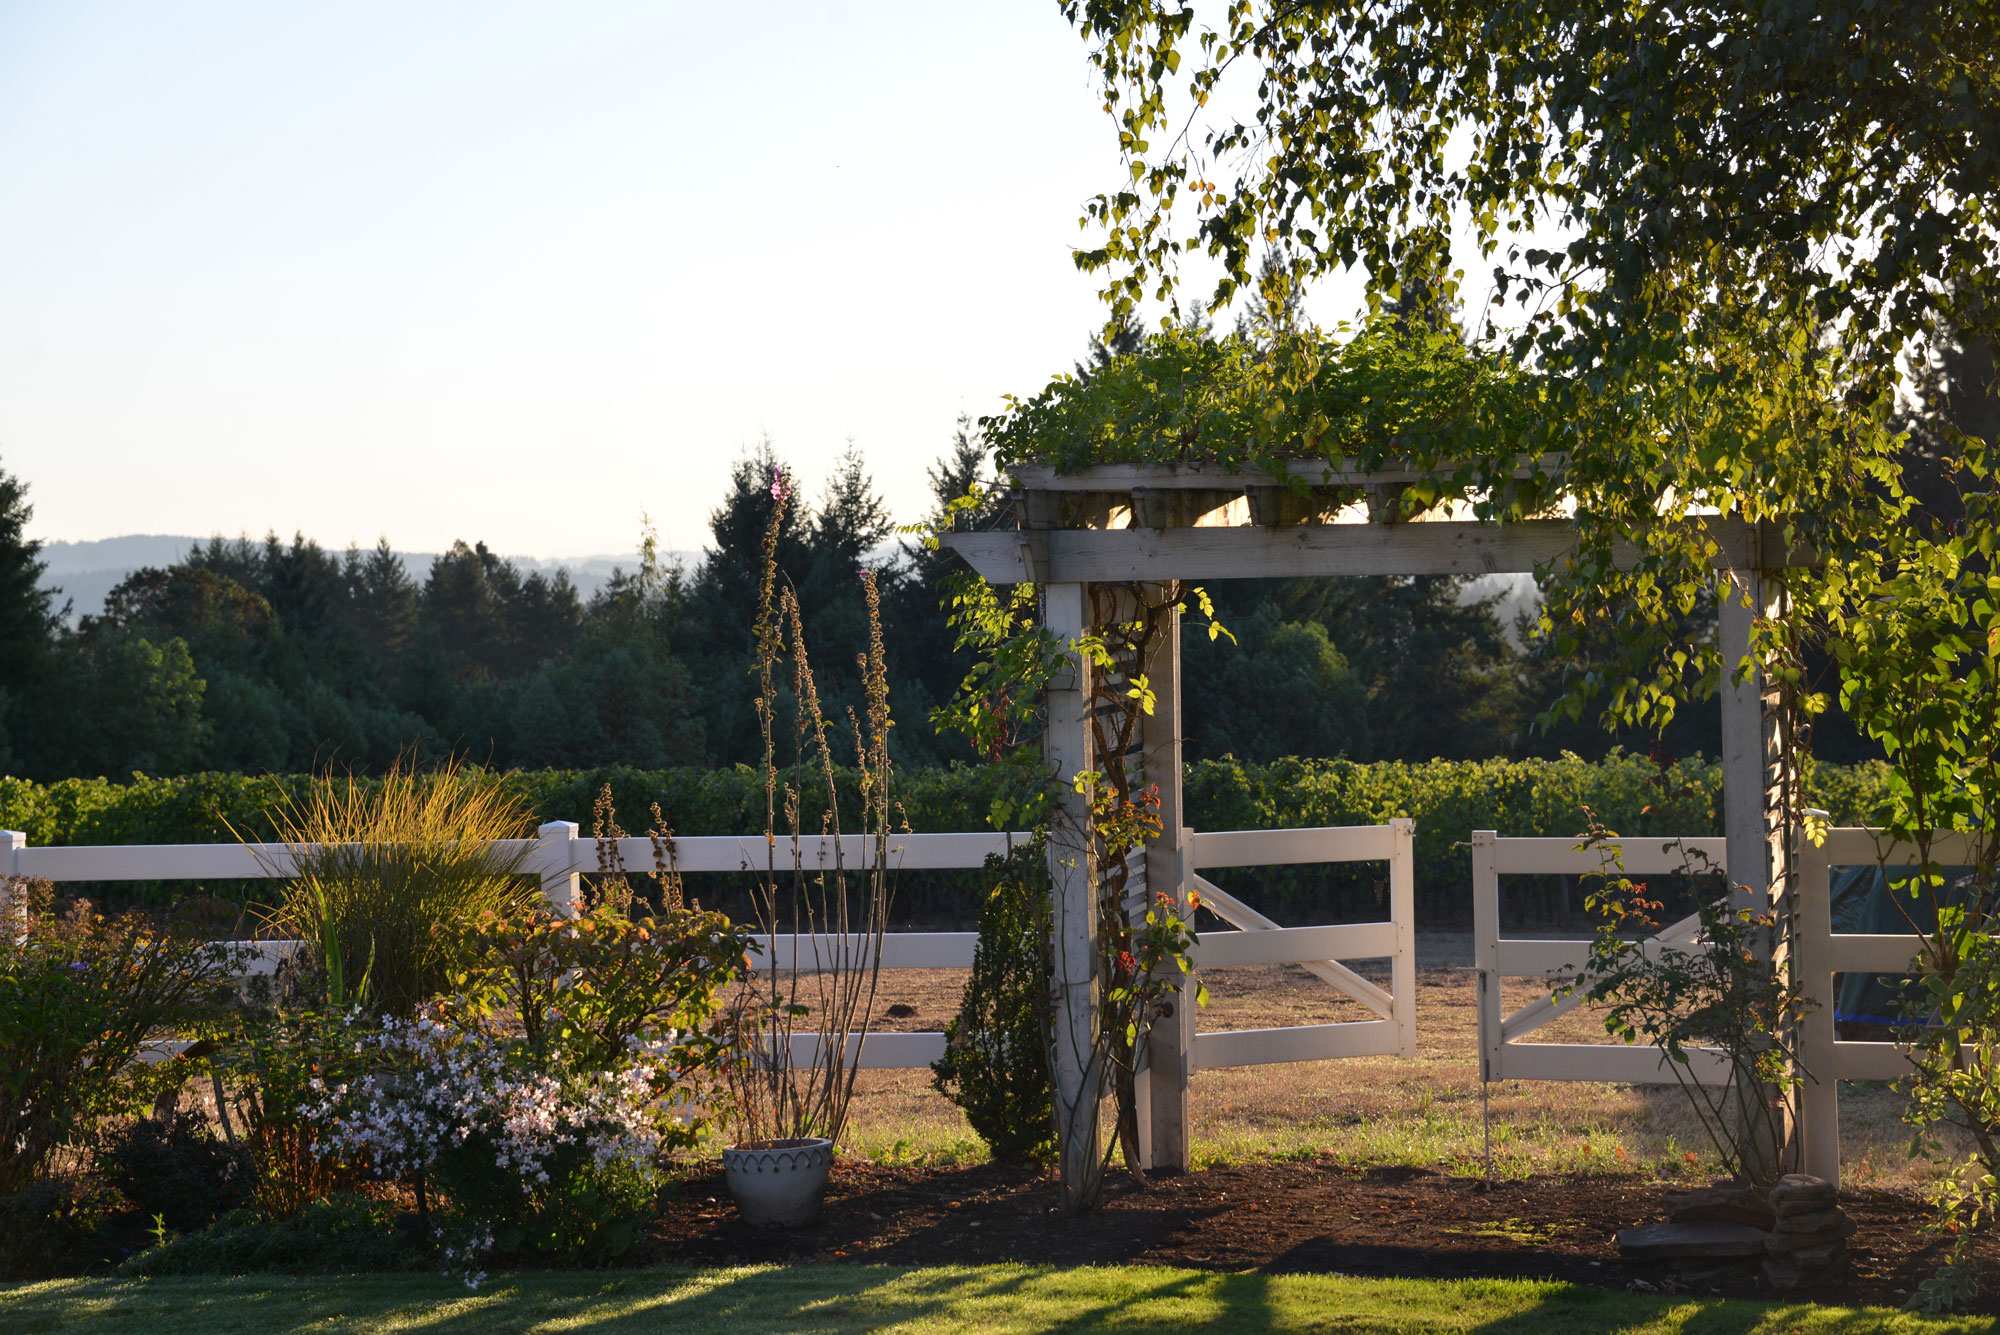 White arbor with white fence and flowers